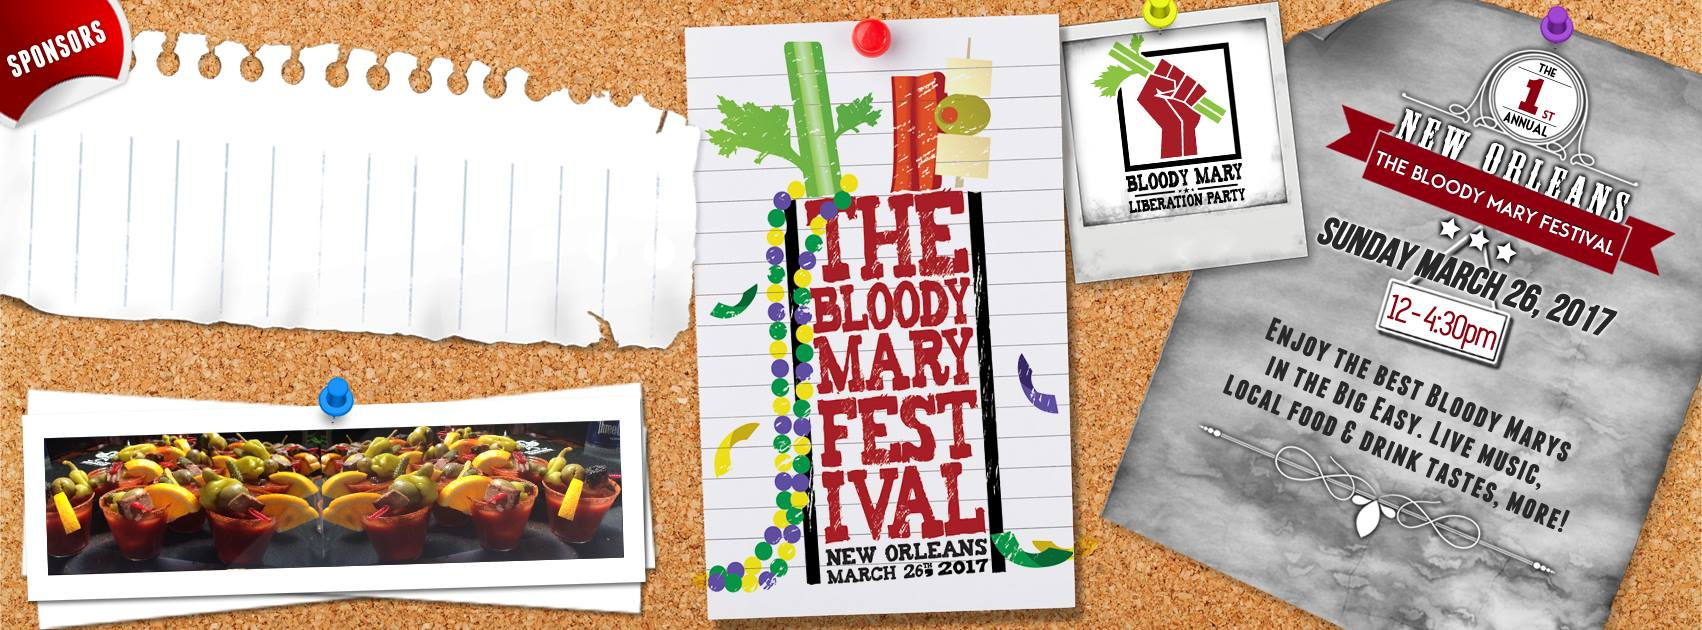 The Bloody Mary Fest - New Orleans